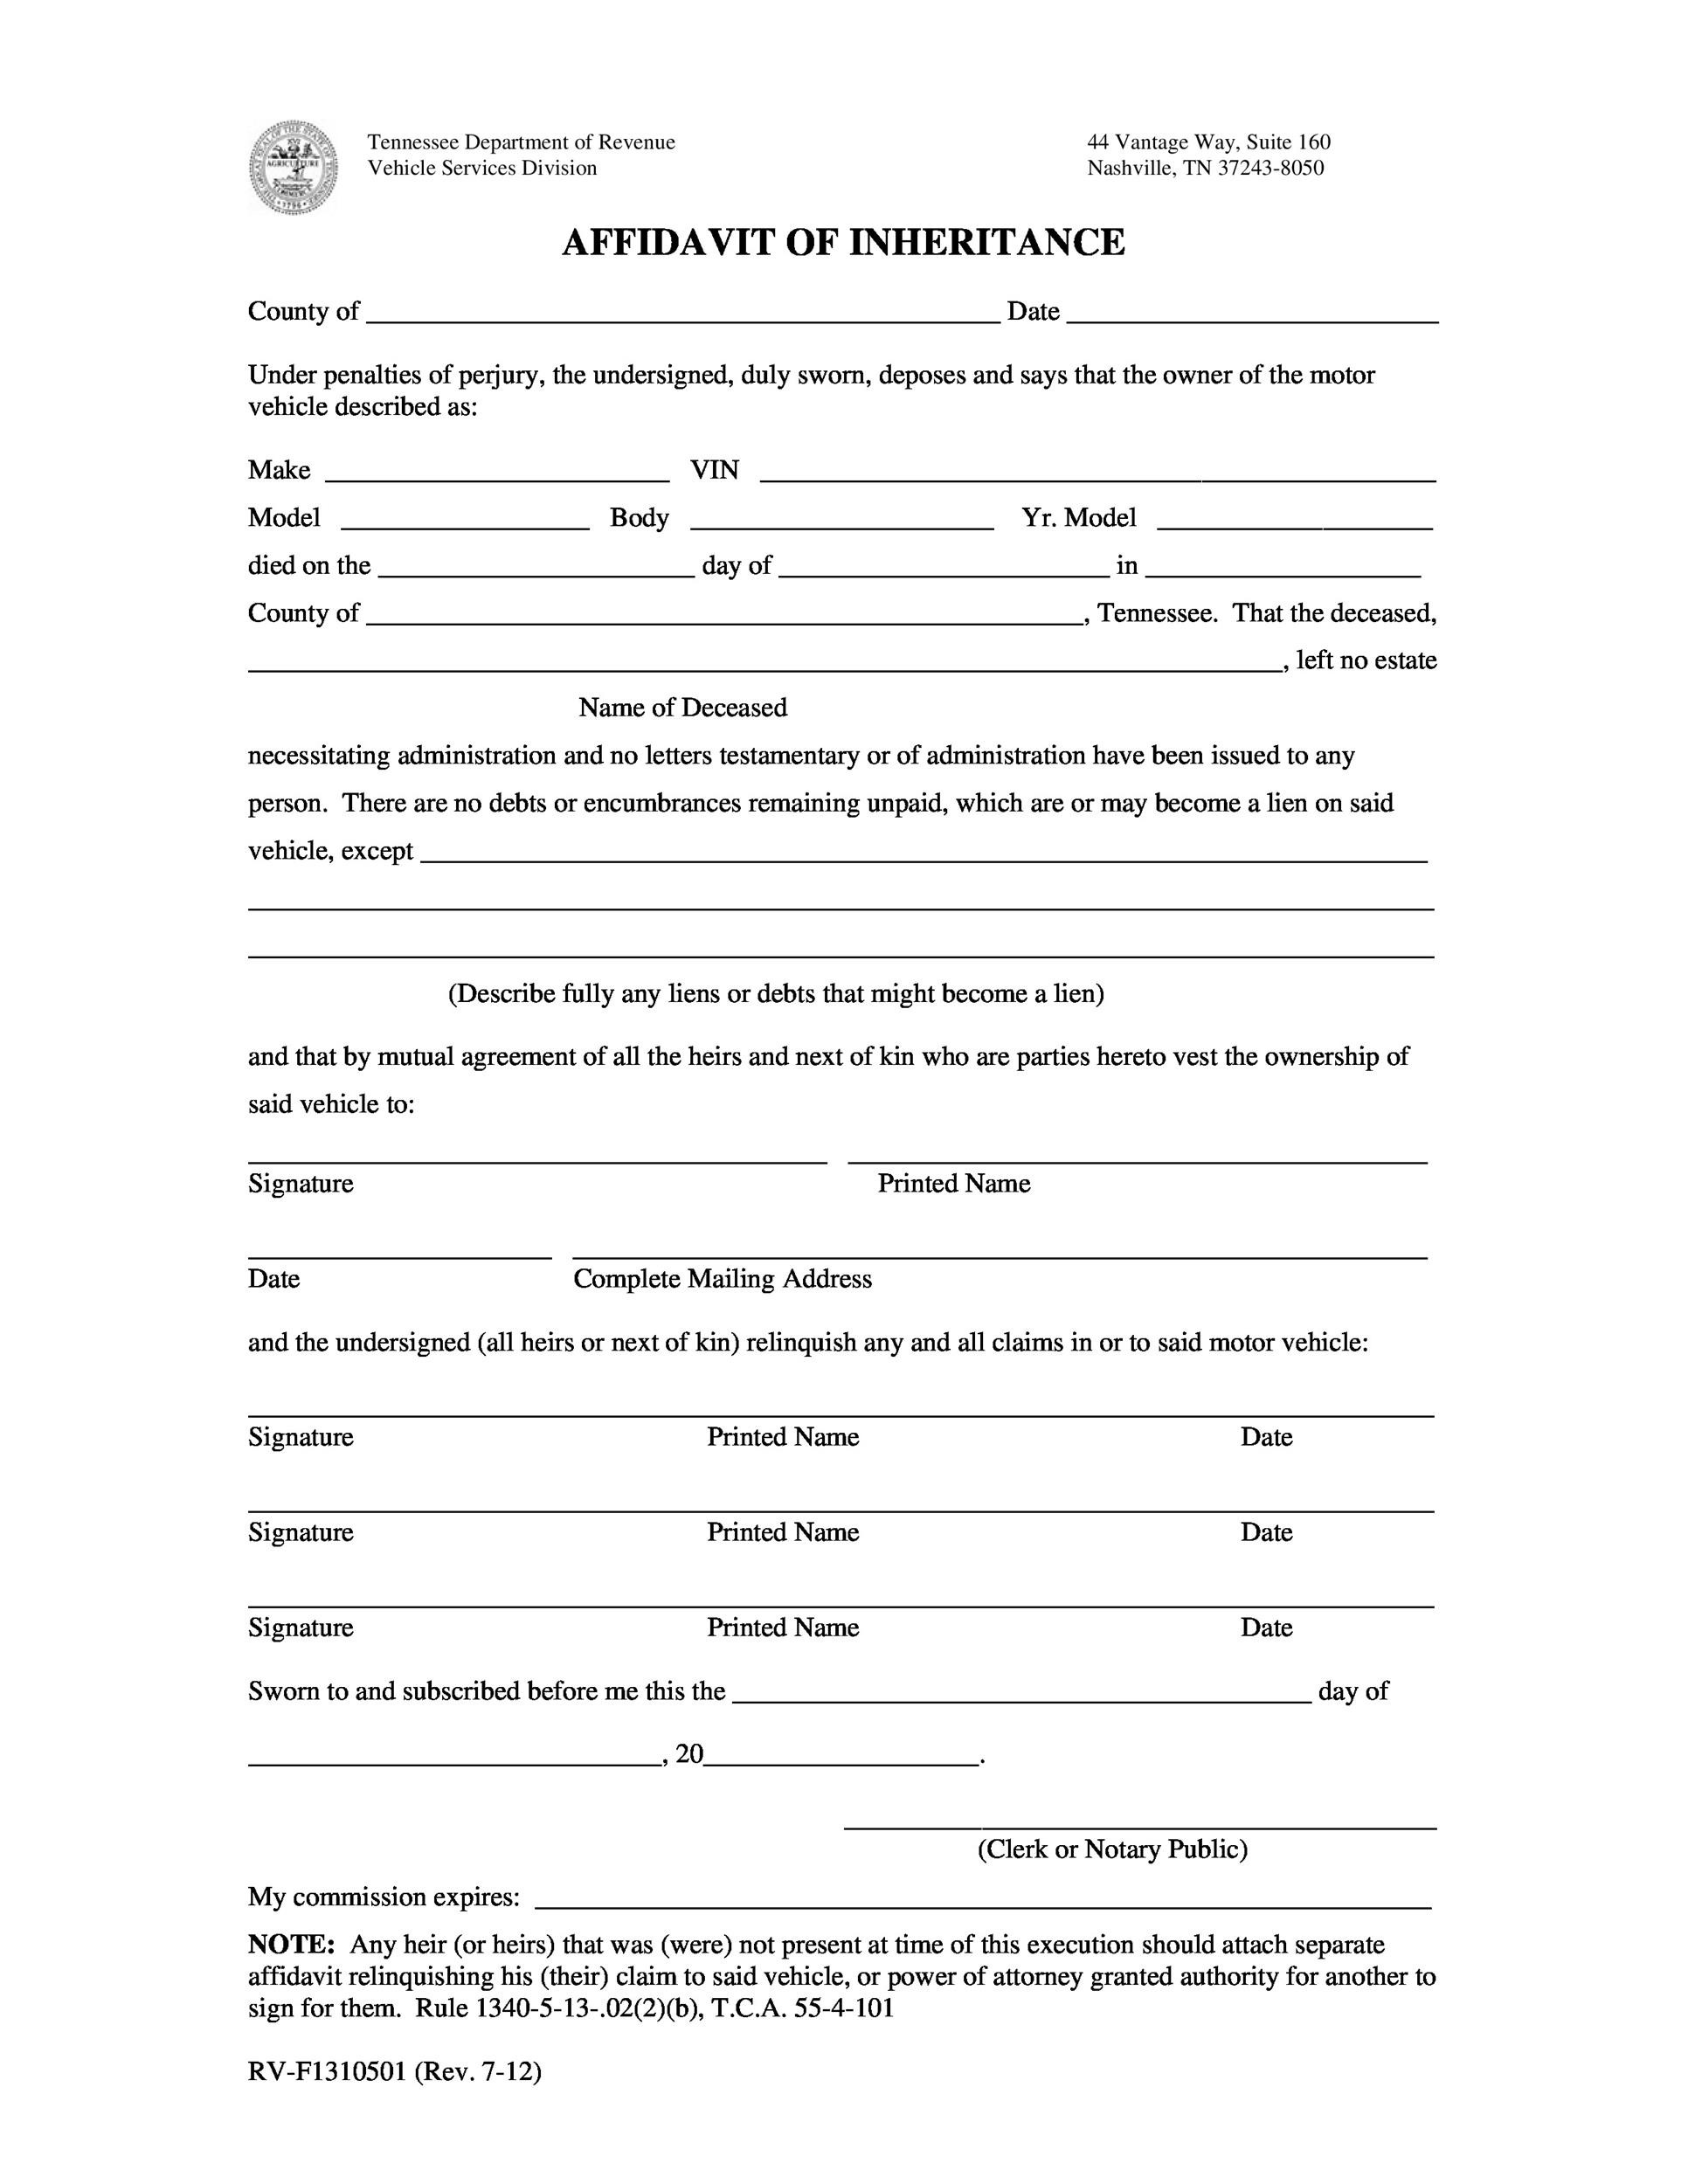 Perfect Affidavit Templates. Free Affidavit Form 21 Printable Affidavit Form 21 And Free Printable Affidavit Form